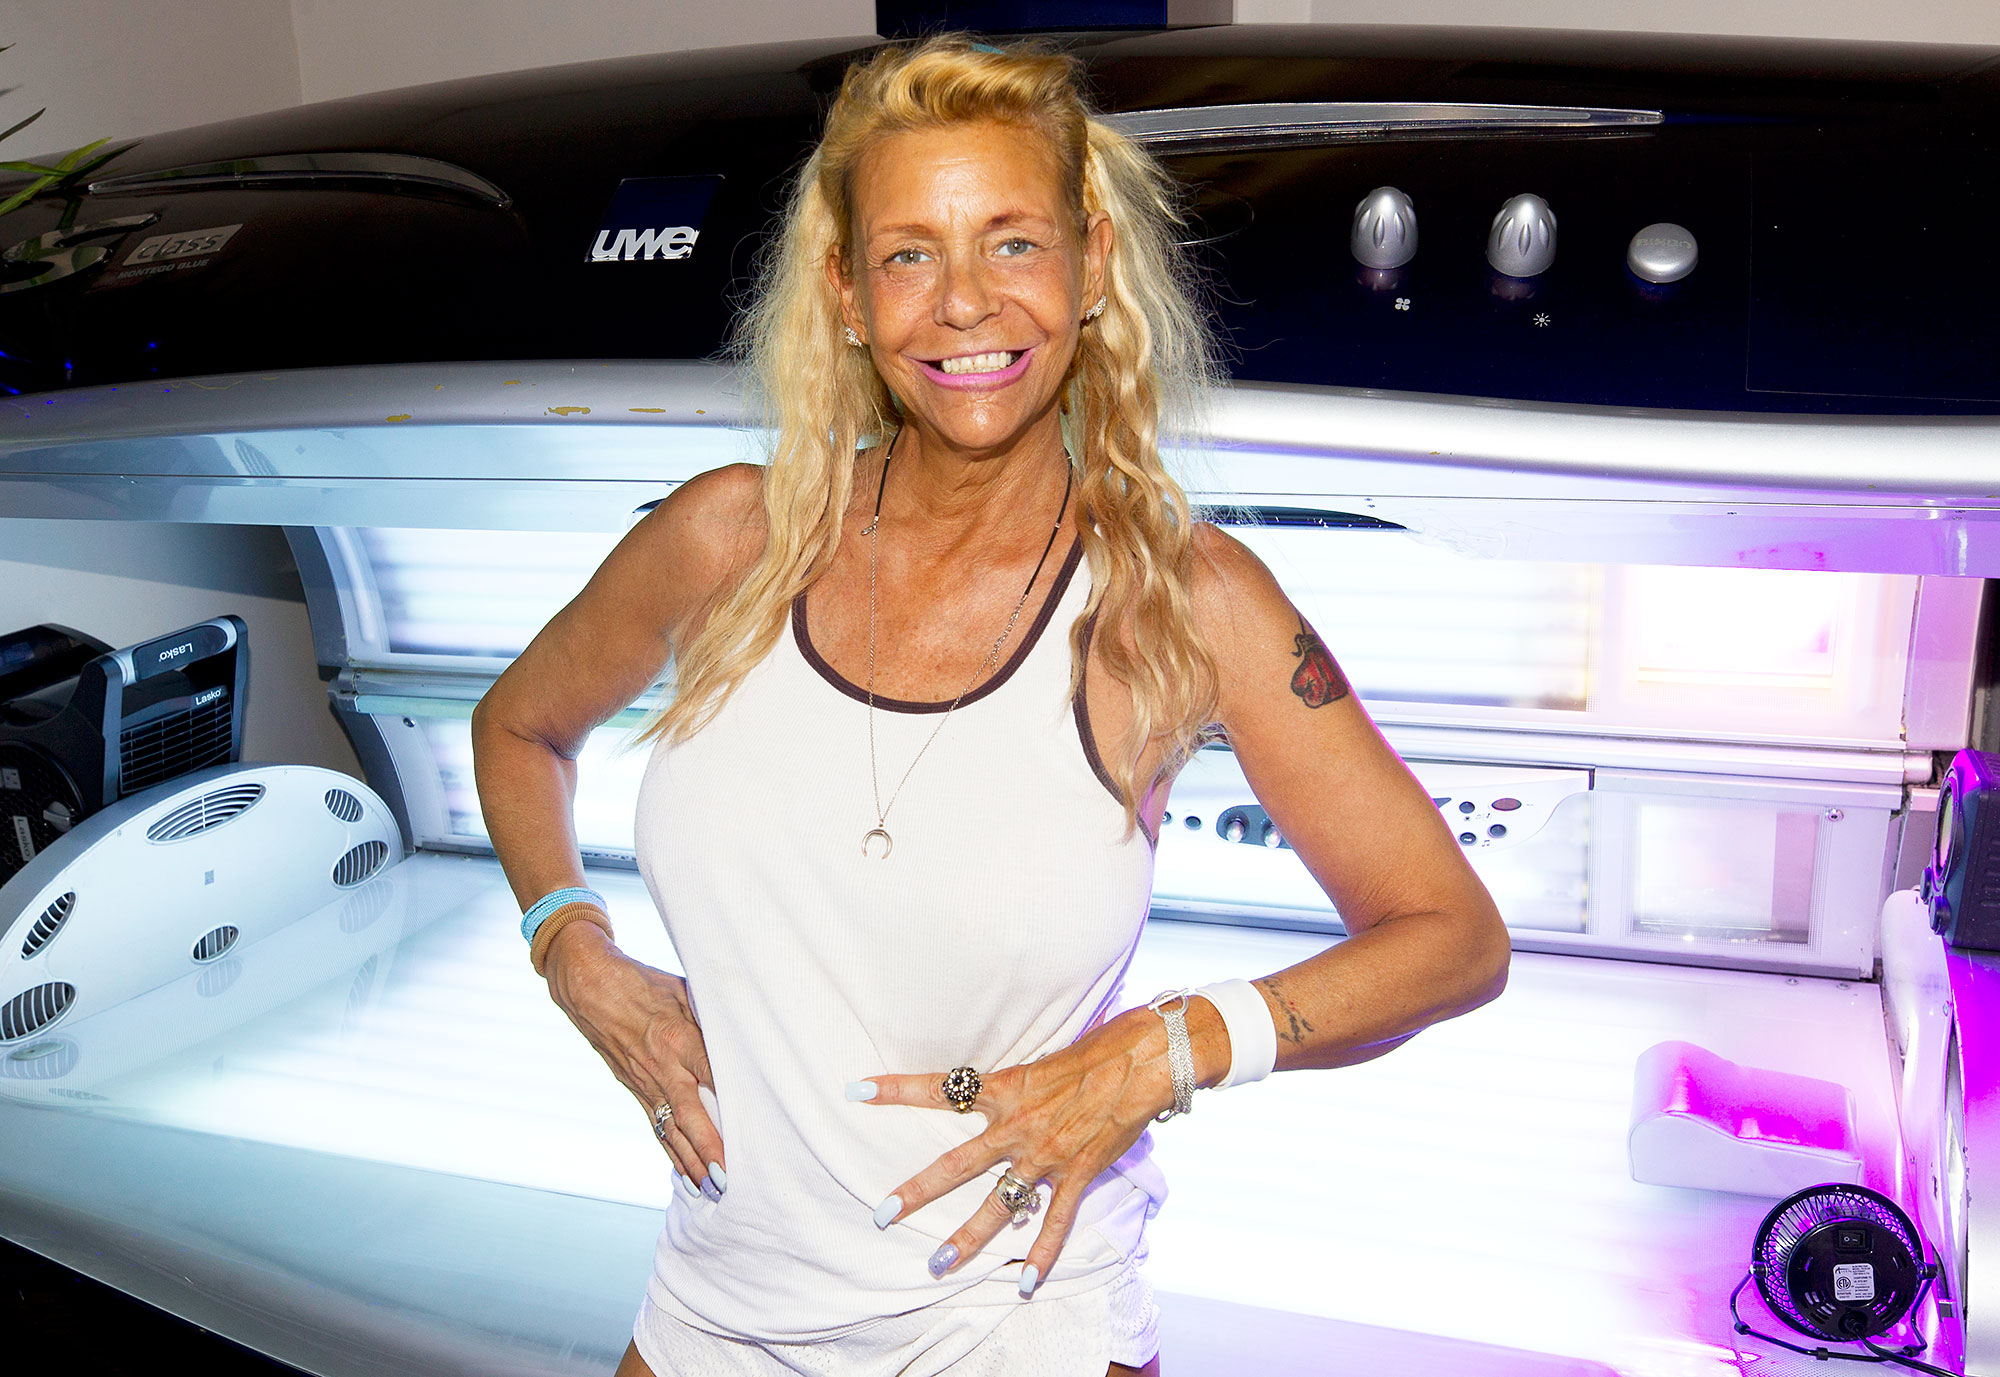 Tan Mom Patricia Krentcil Poses In Front of a Tanning Bed Ready to Take the Music Business By Storm